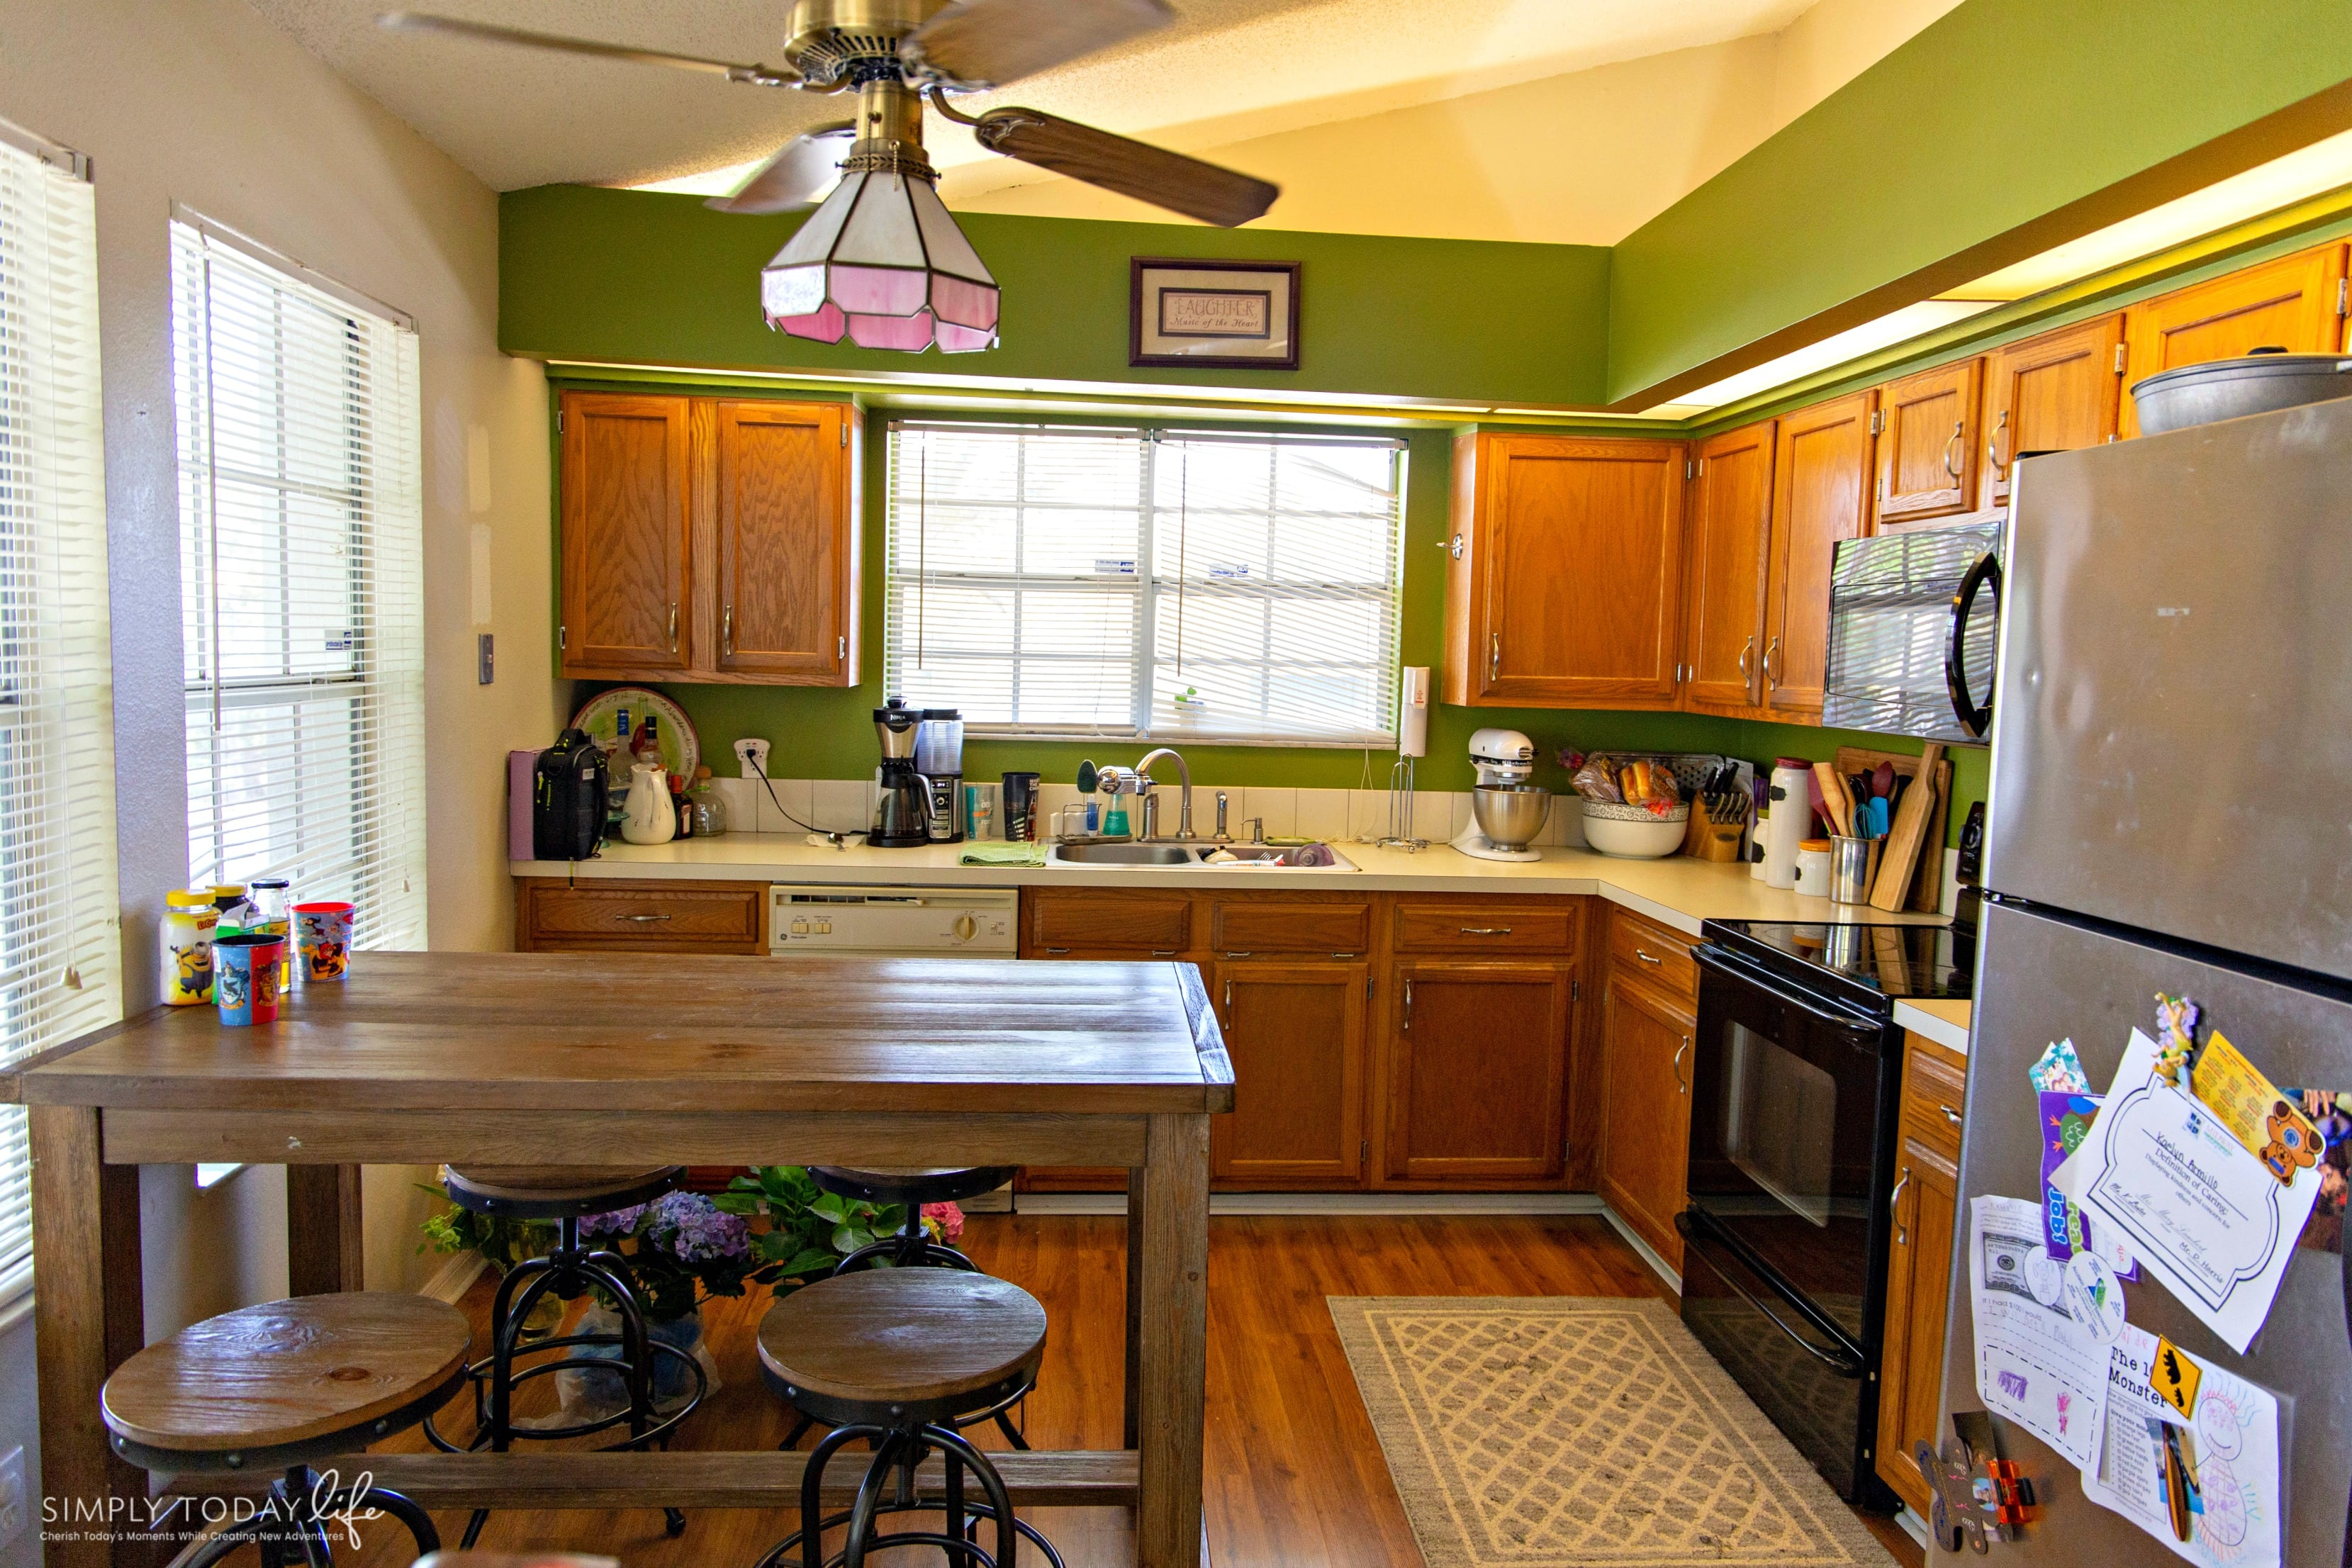 Painting Kitchen Cabinets With Chalk Paint From Dixie Belle | From 80's Drab To Farmhouse Fab Before Photo - simplytodaylife